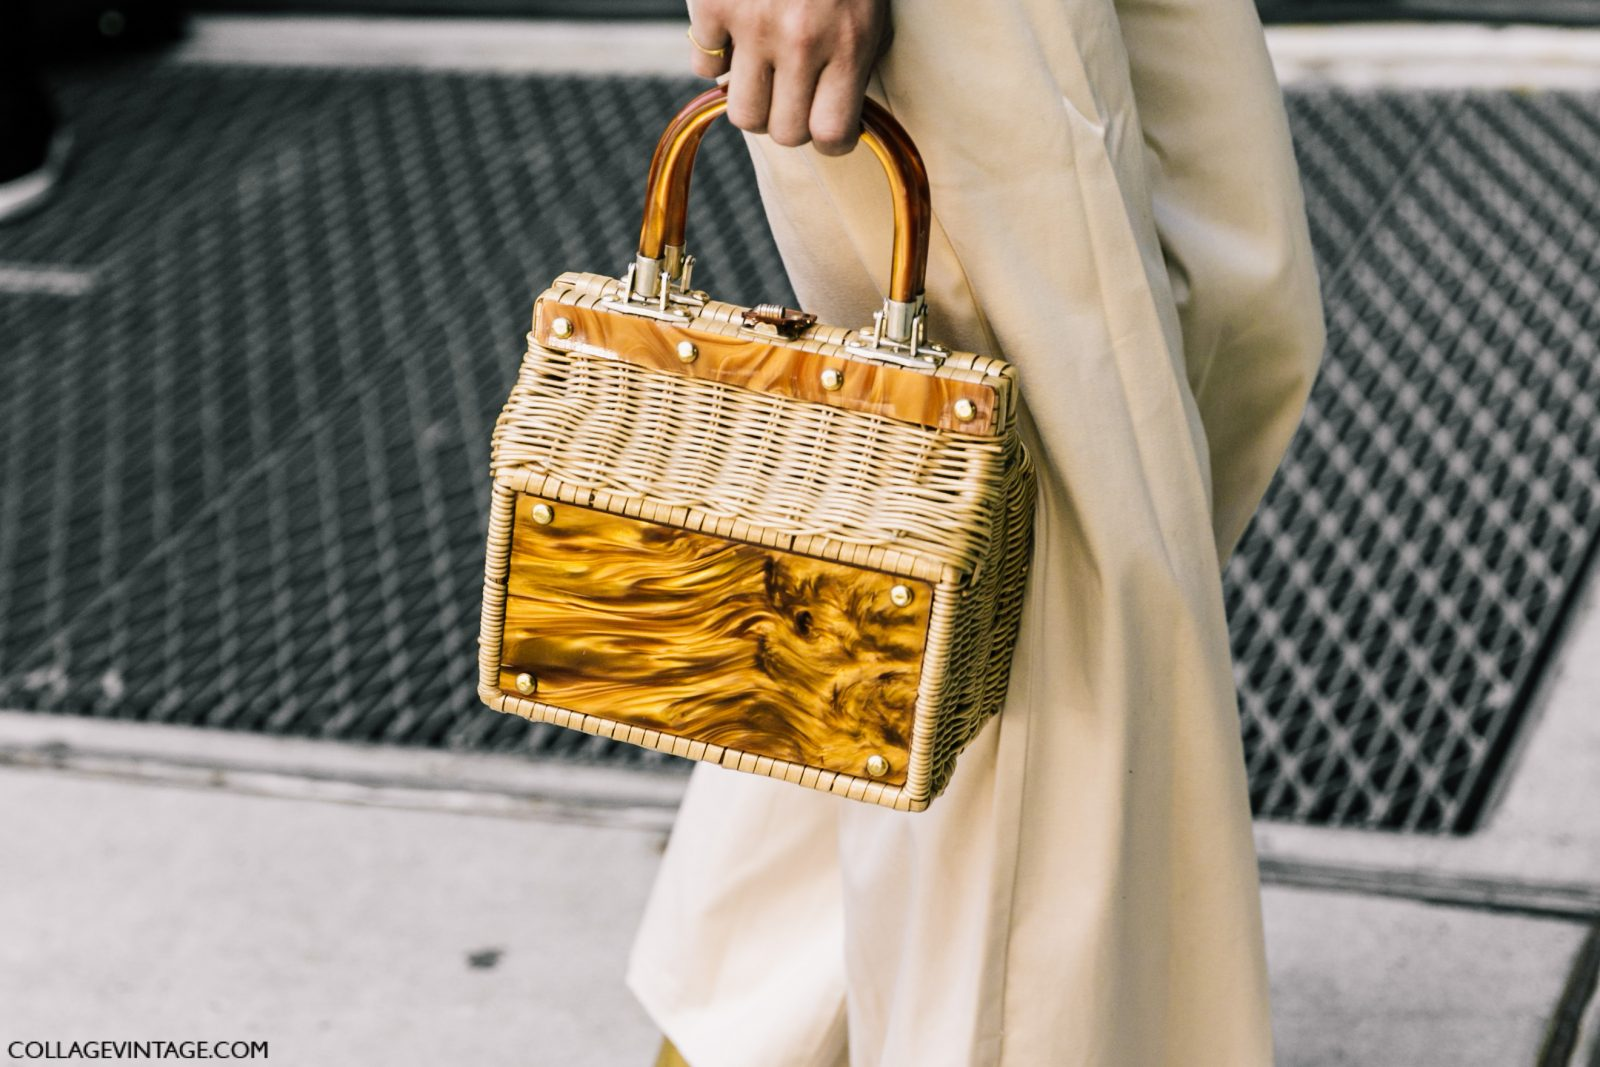 nyfw-new_york_fashion_week_ss17-street_style-outfits-collage_vintage-vintage-phillip_lim-the-row-proenza_schouler-rossie_aussolin